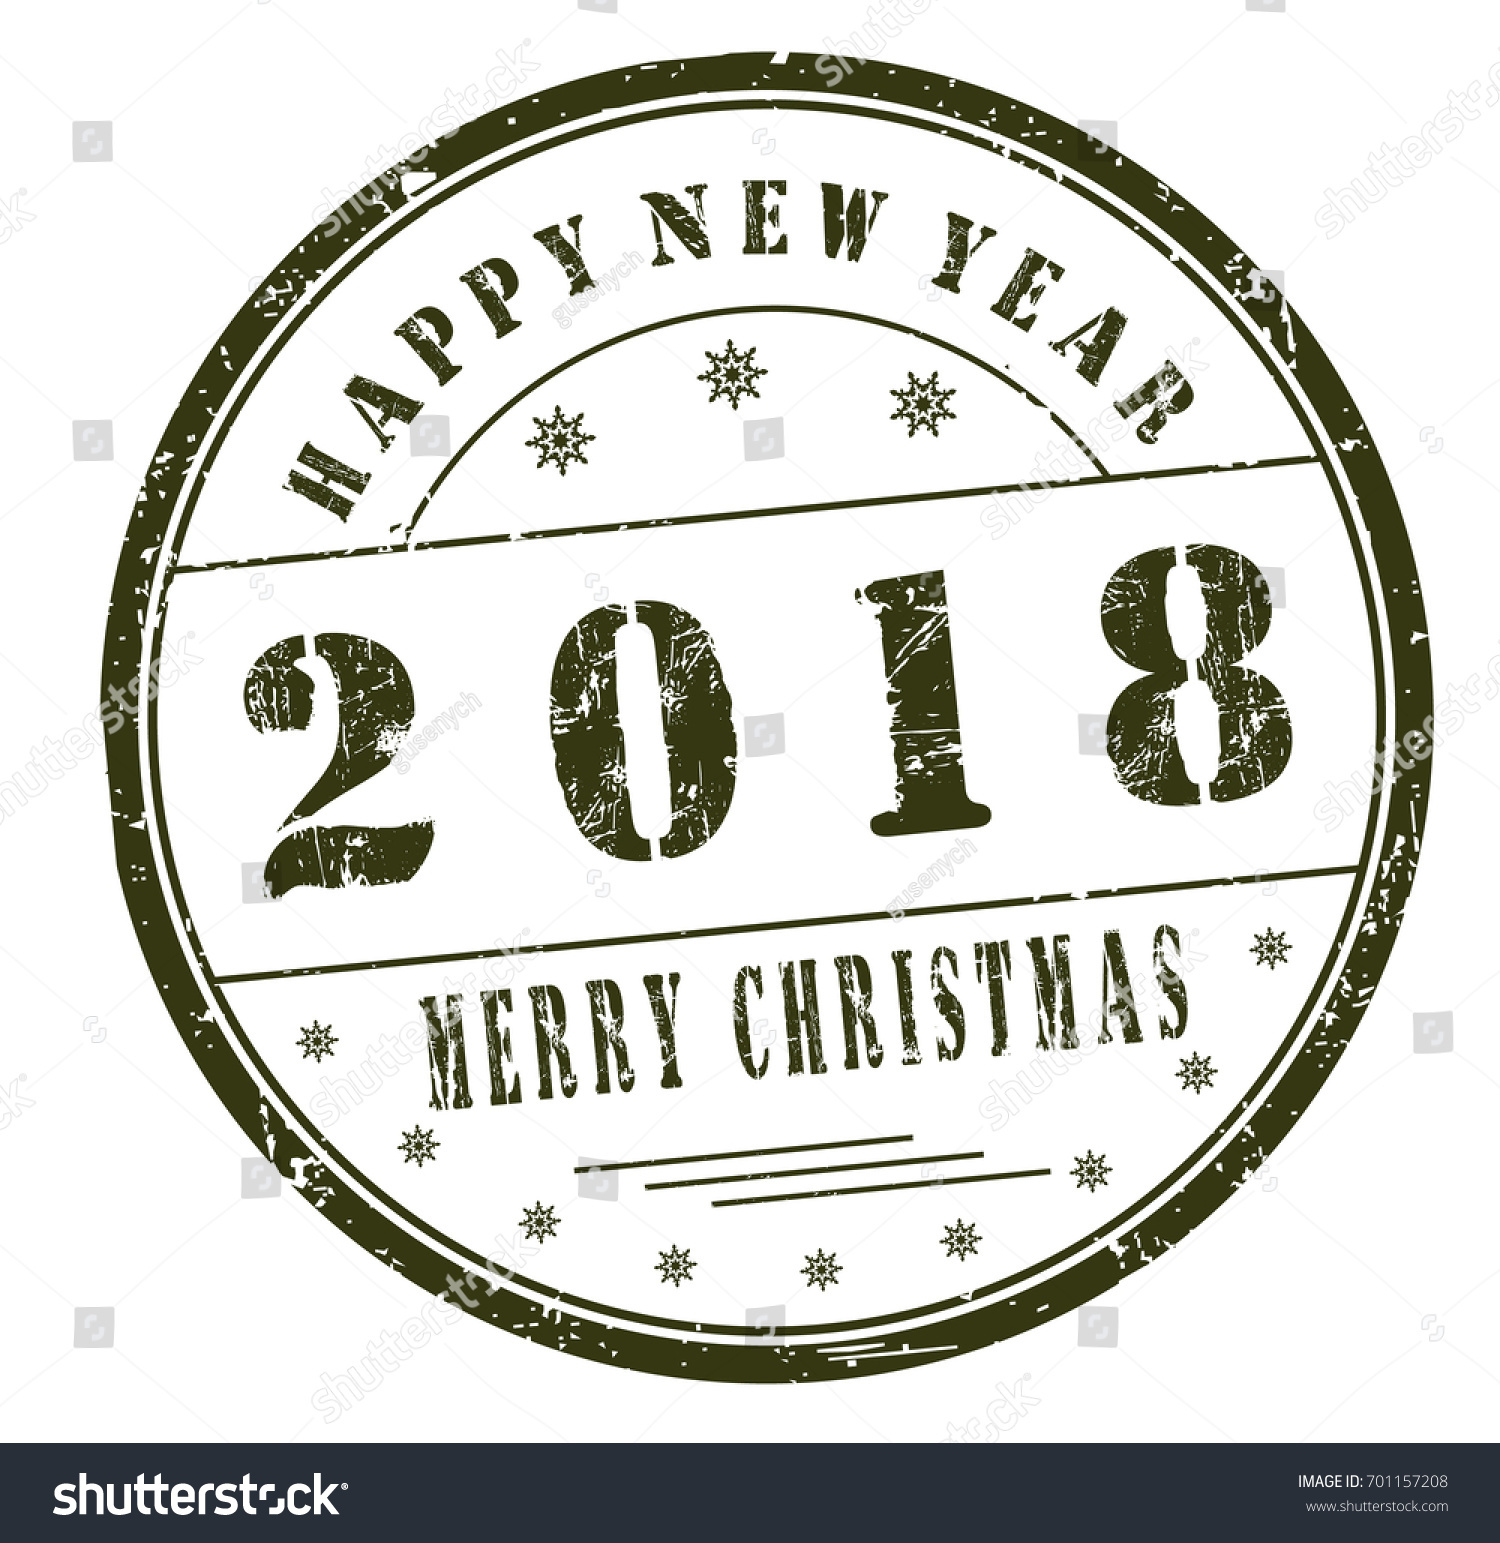 Image result for happy new year rubber stamp